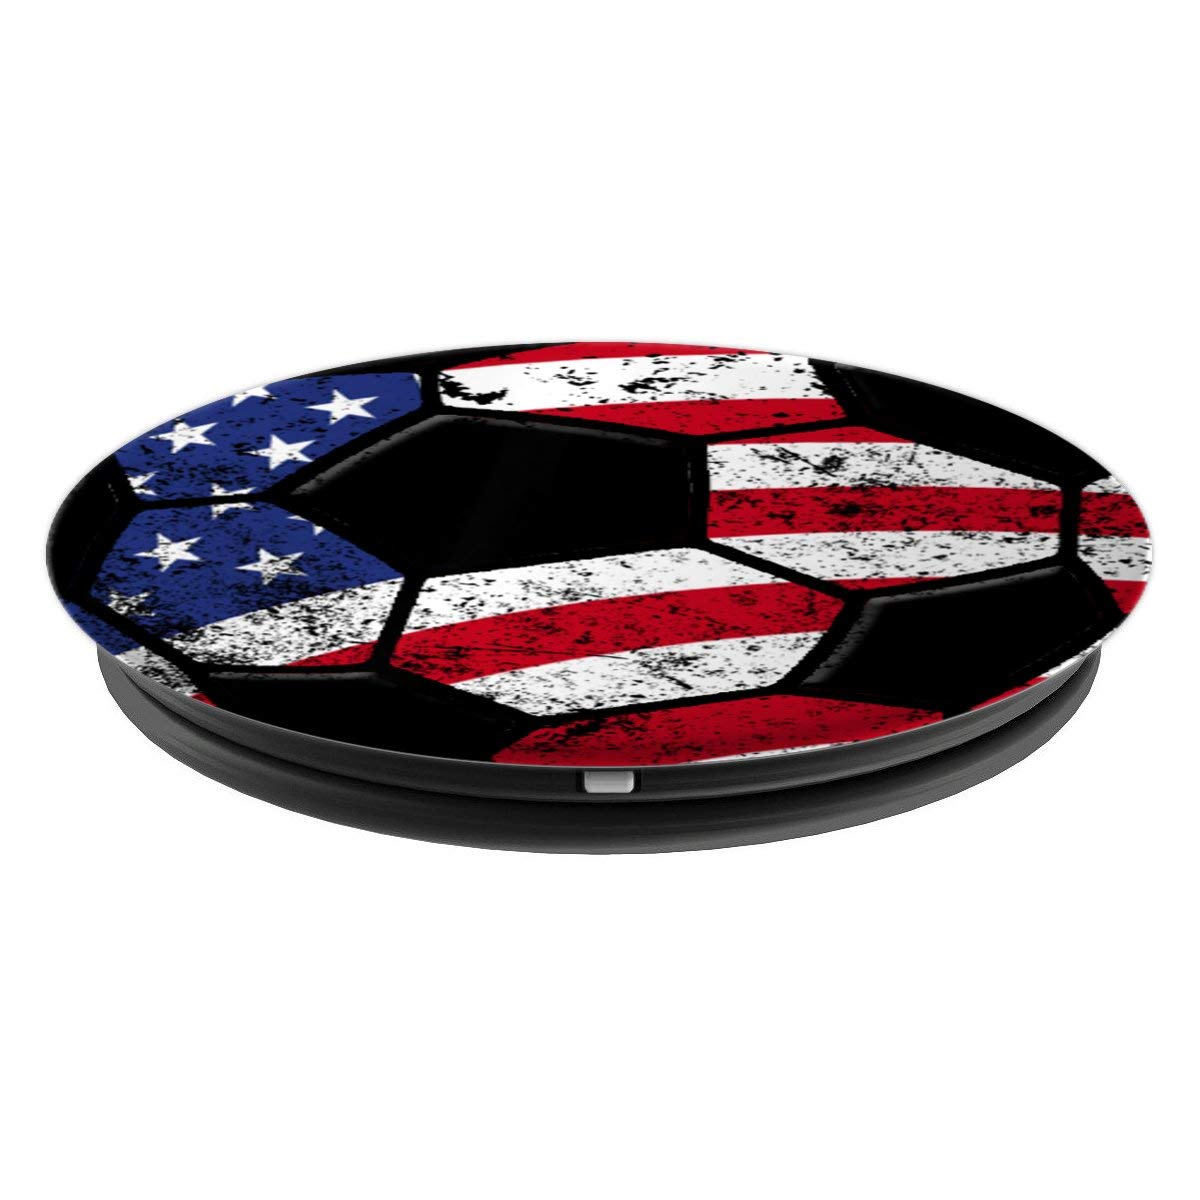 Amazon.com: Soccer USA Flag Pop Socket Player Christmas Birthday Gift - PopSockets Grip and Stand for Phones and Tablets: Cell Phones & Accessories